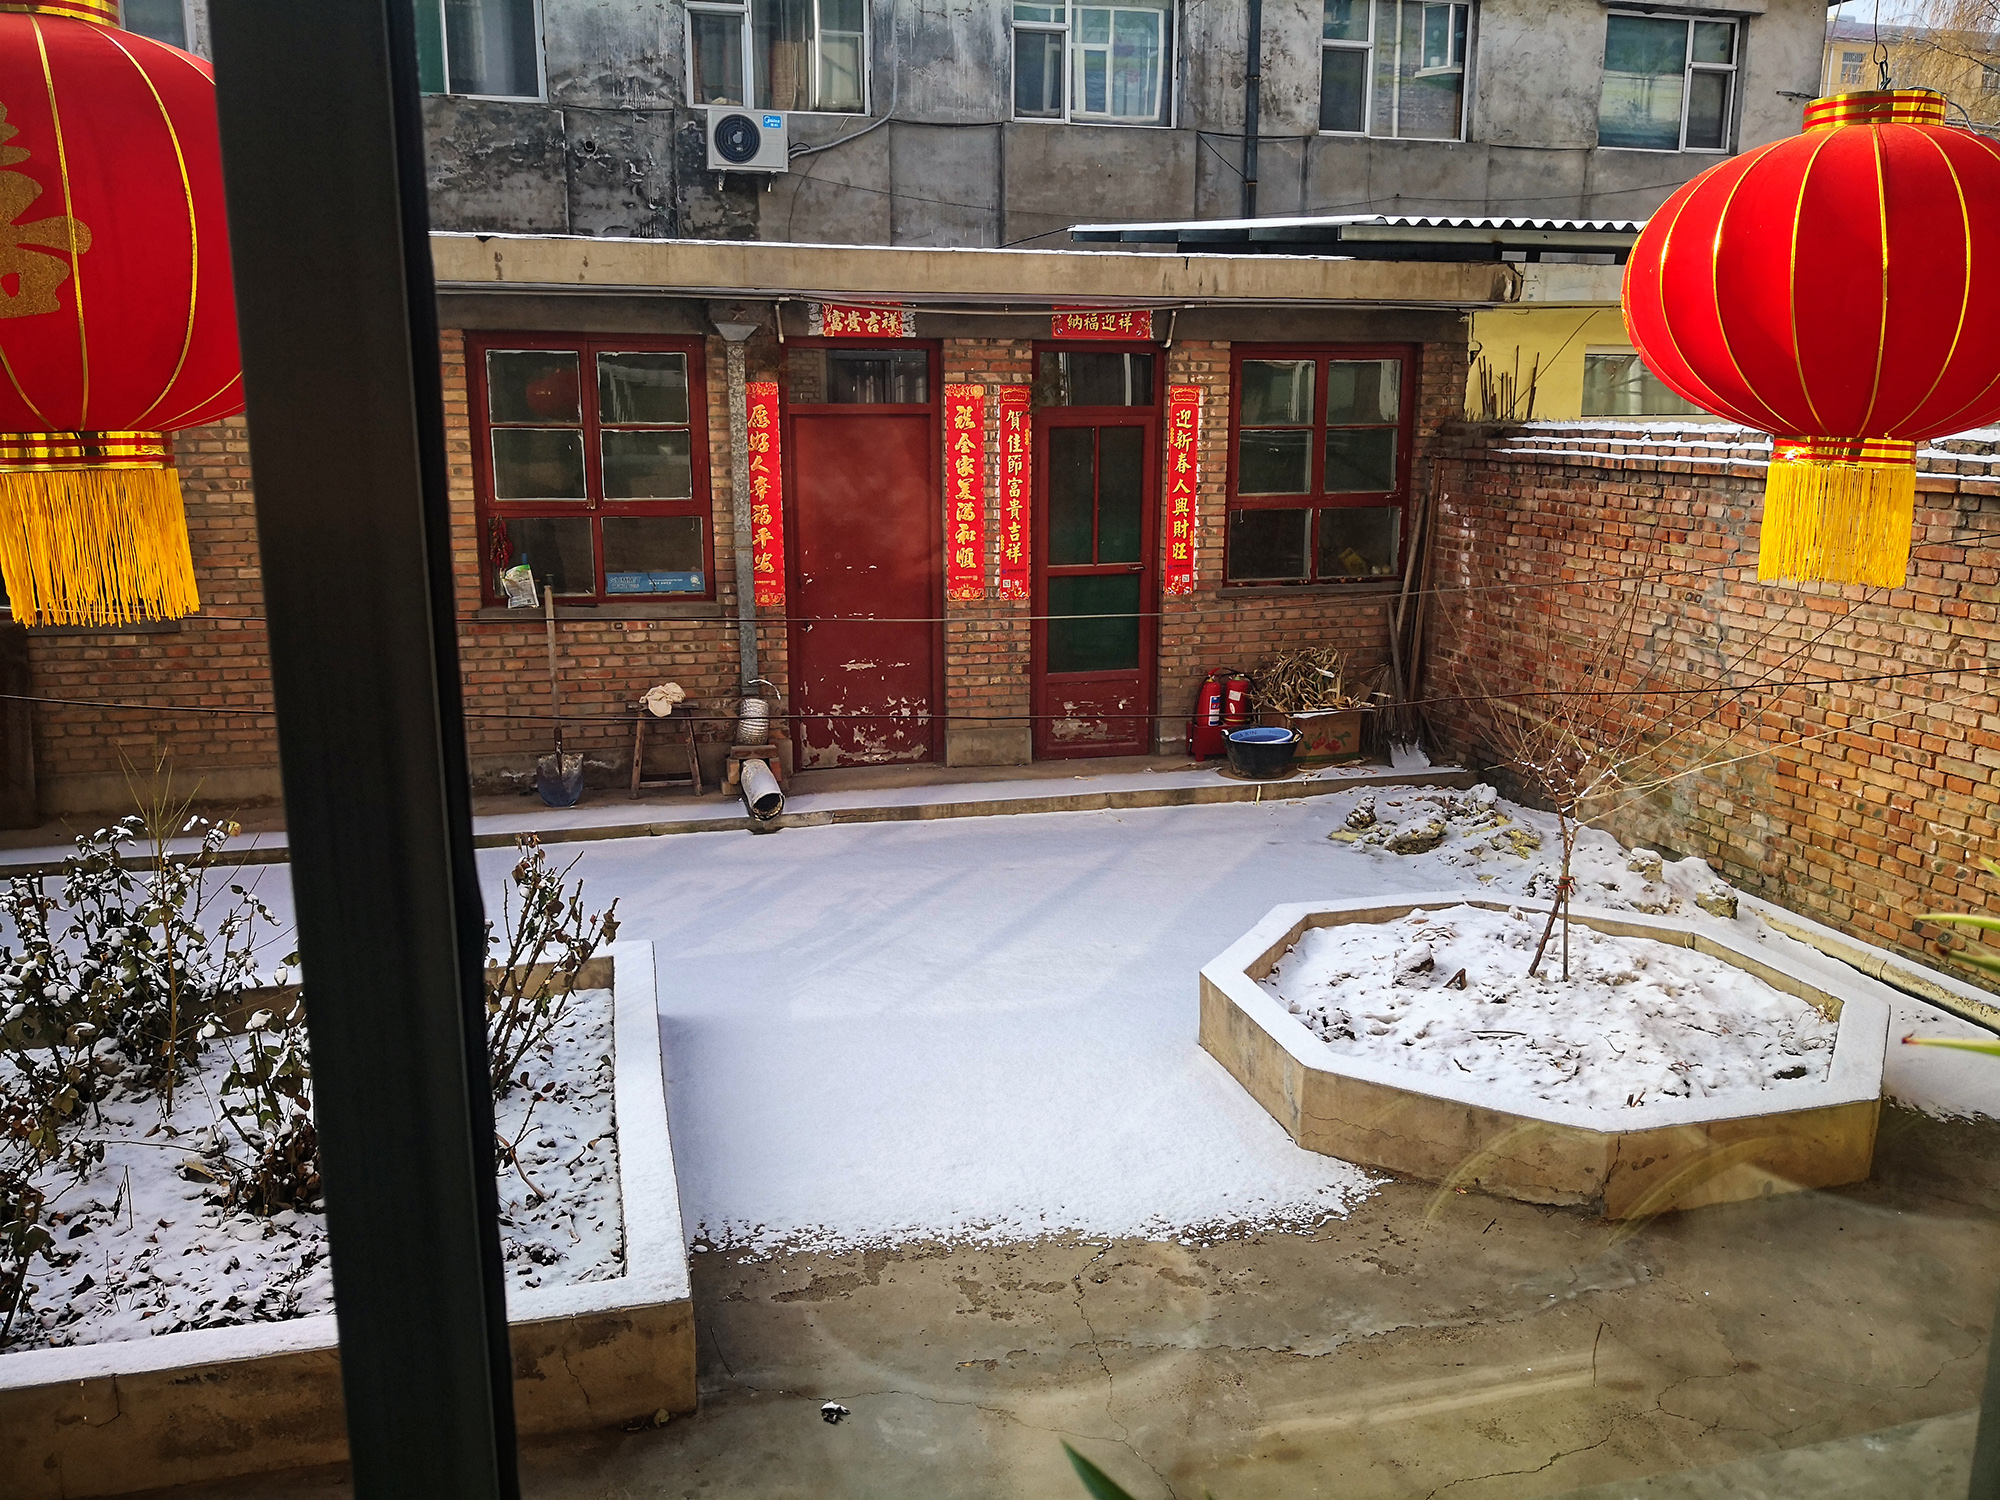 Snow in mother's backyard